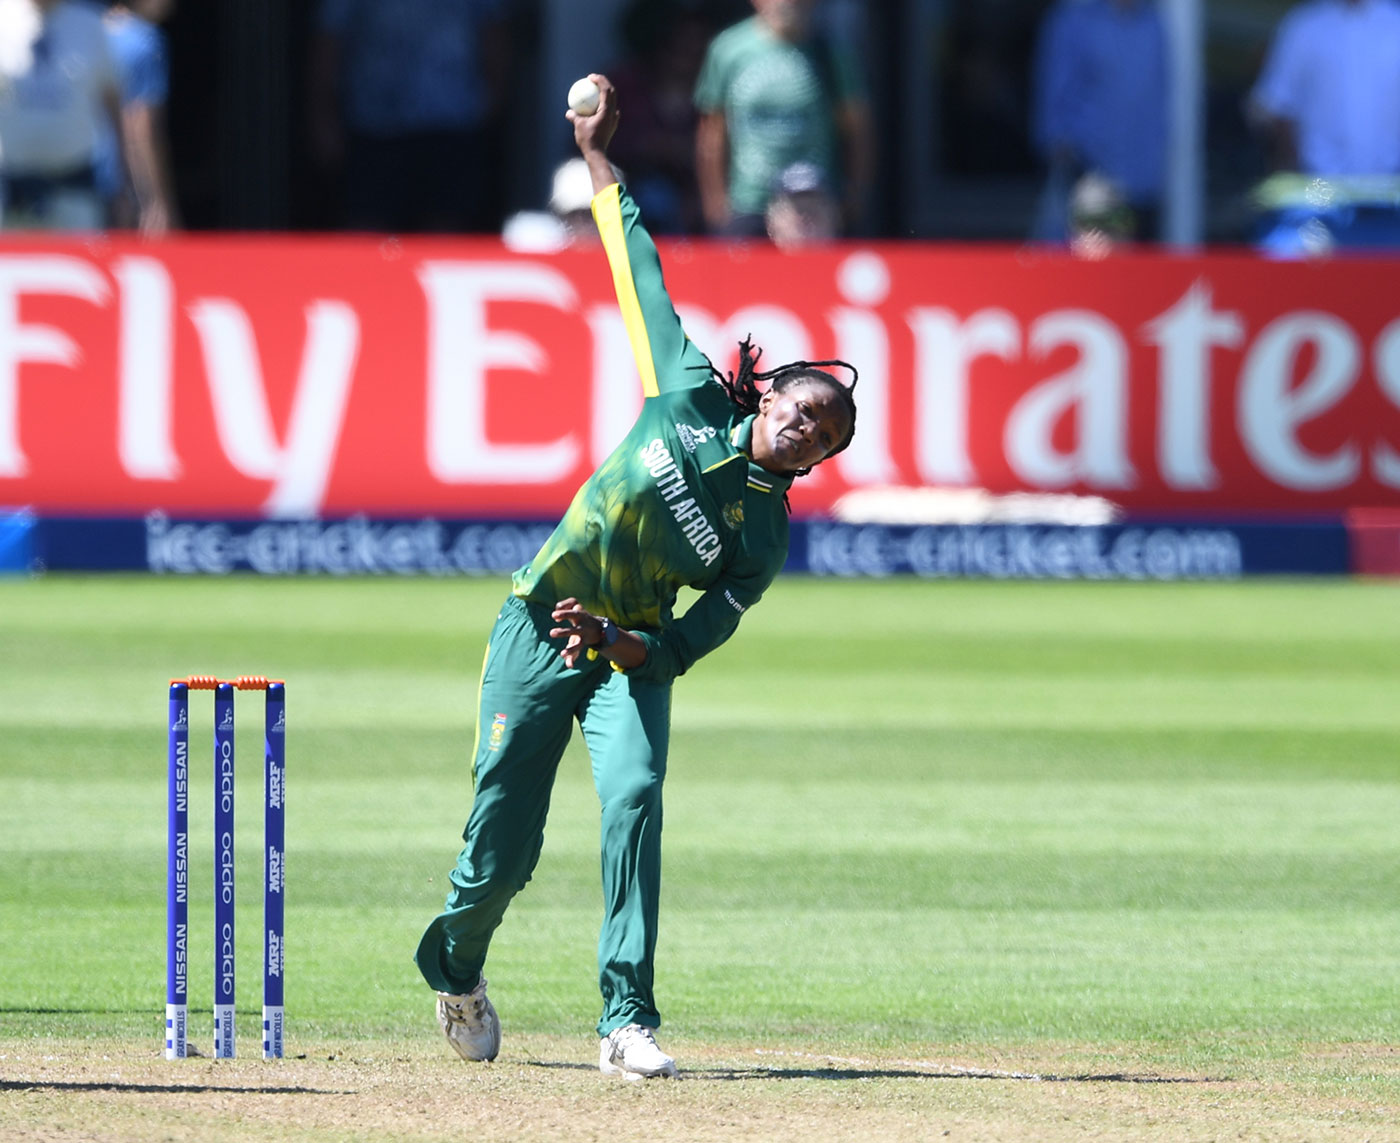 At No. 44, Ayabonga Khaka, who is primarily a bowler, is the highest-ranked black African batsman in South African women's ODIs